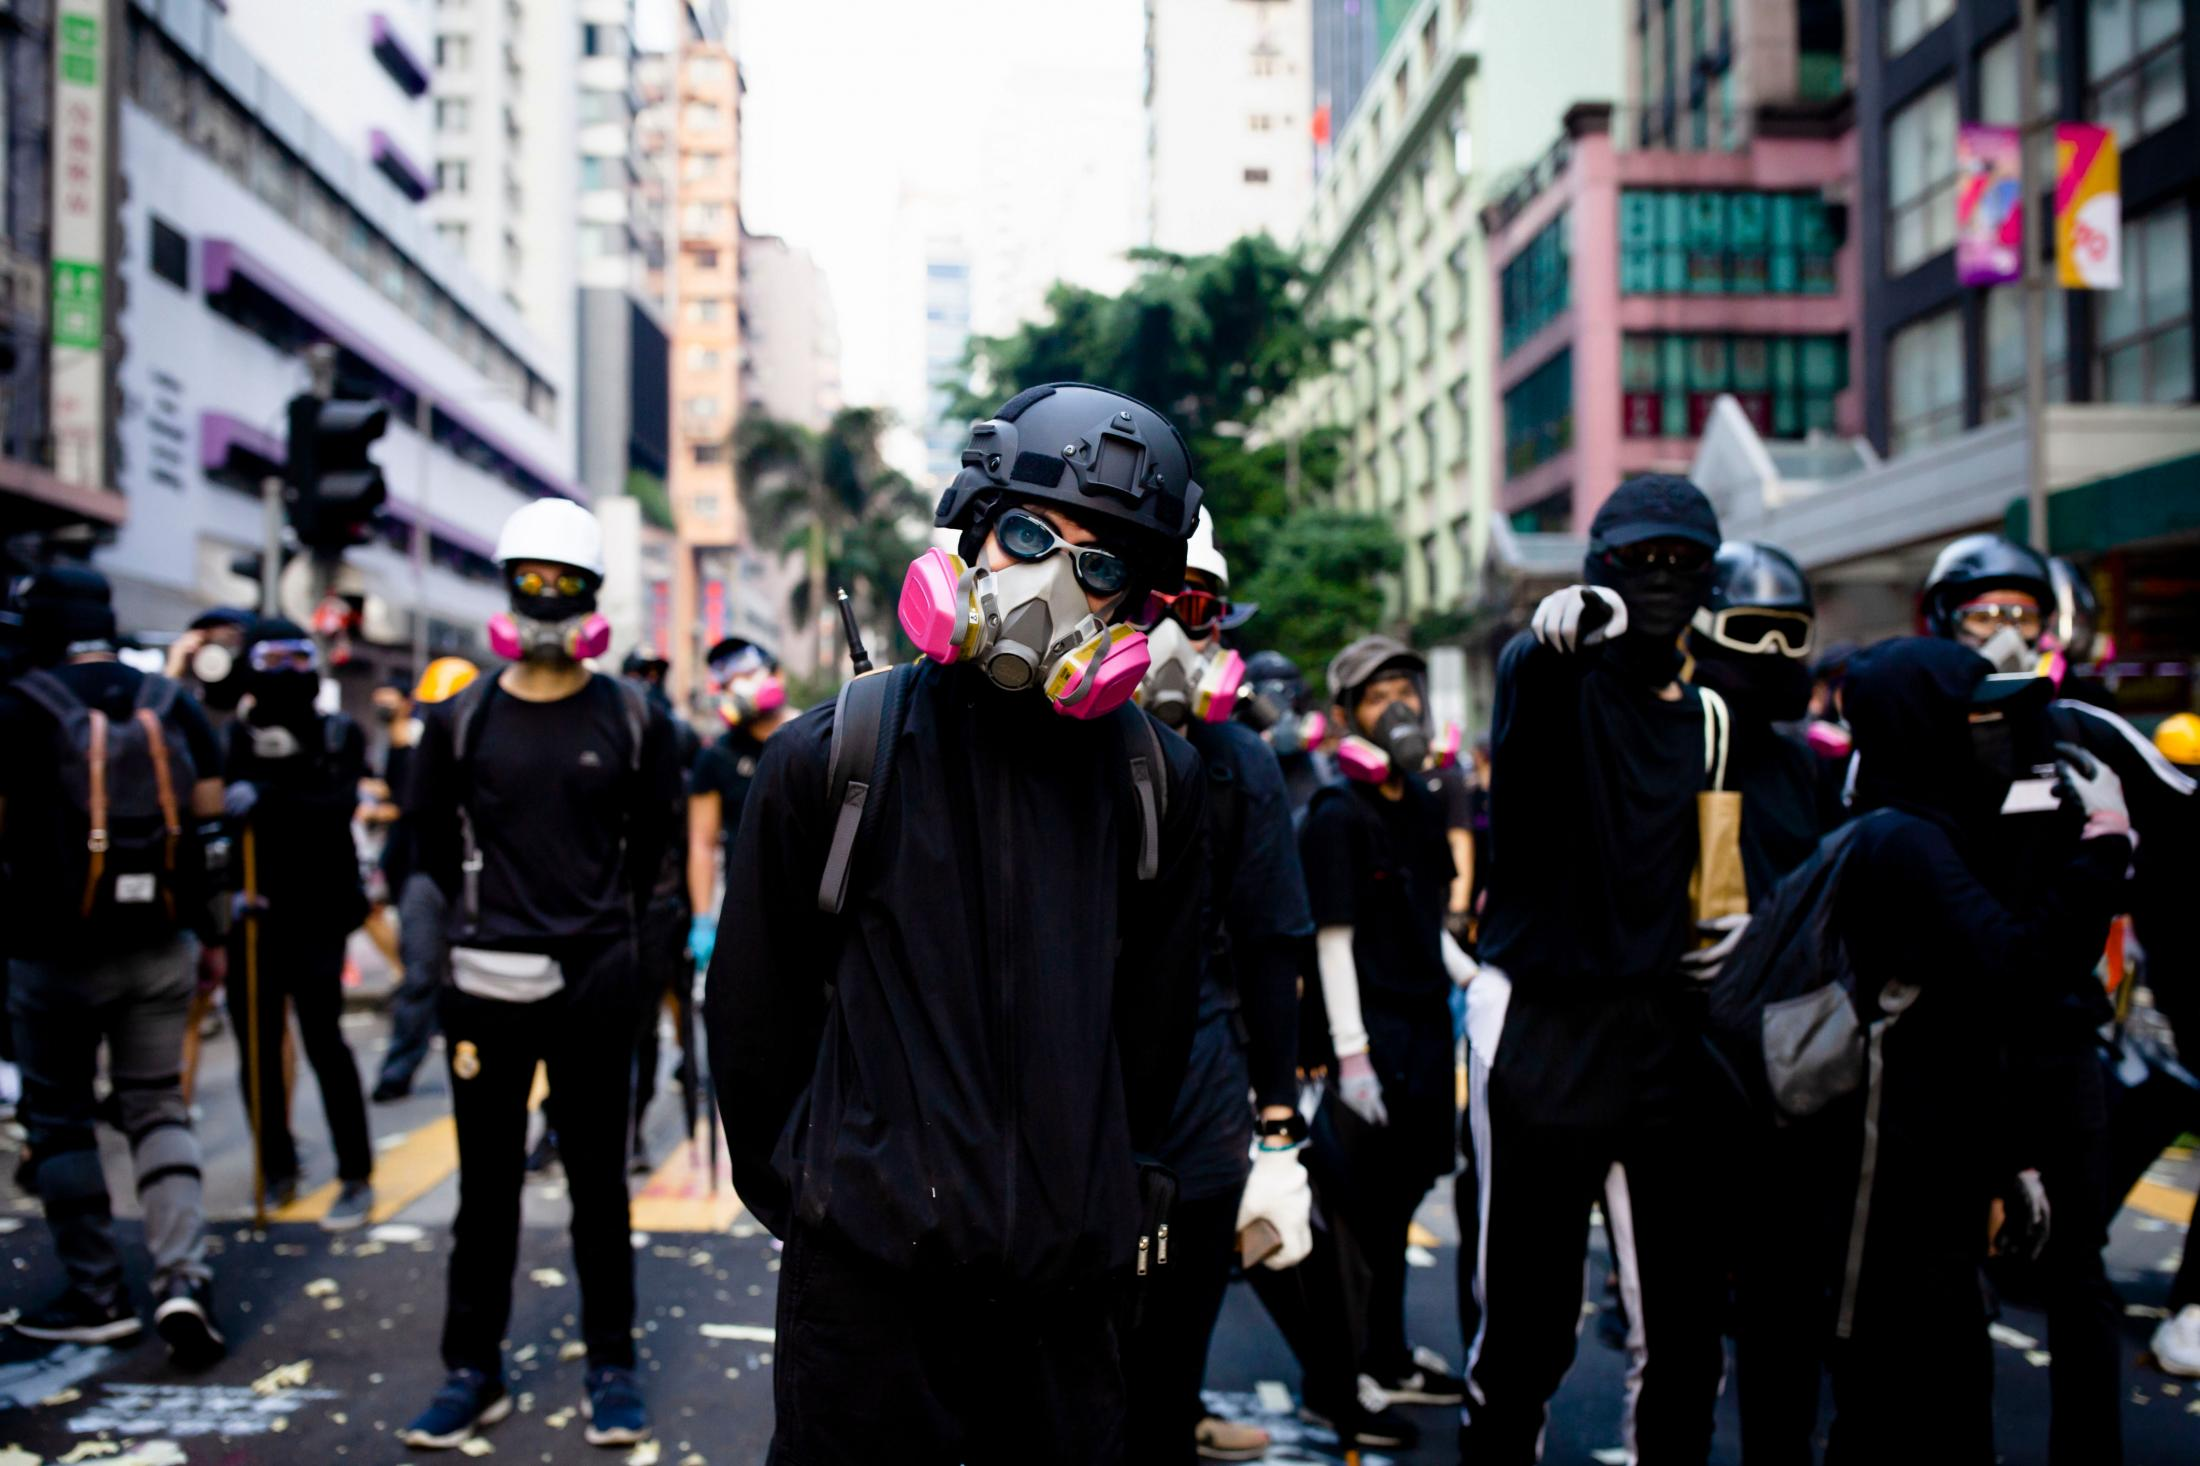 Hong Kong's pro-democracy protesters defy the authorities on an unauthorized protest on the day of the 70th Anniversary of the People's Republic of China. On this day, a protester was shot with real ammunition by the Hong Kong police. The day ended with 269 people arrested, one of the highest numbers since the beginning of the demonstrations.